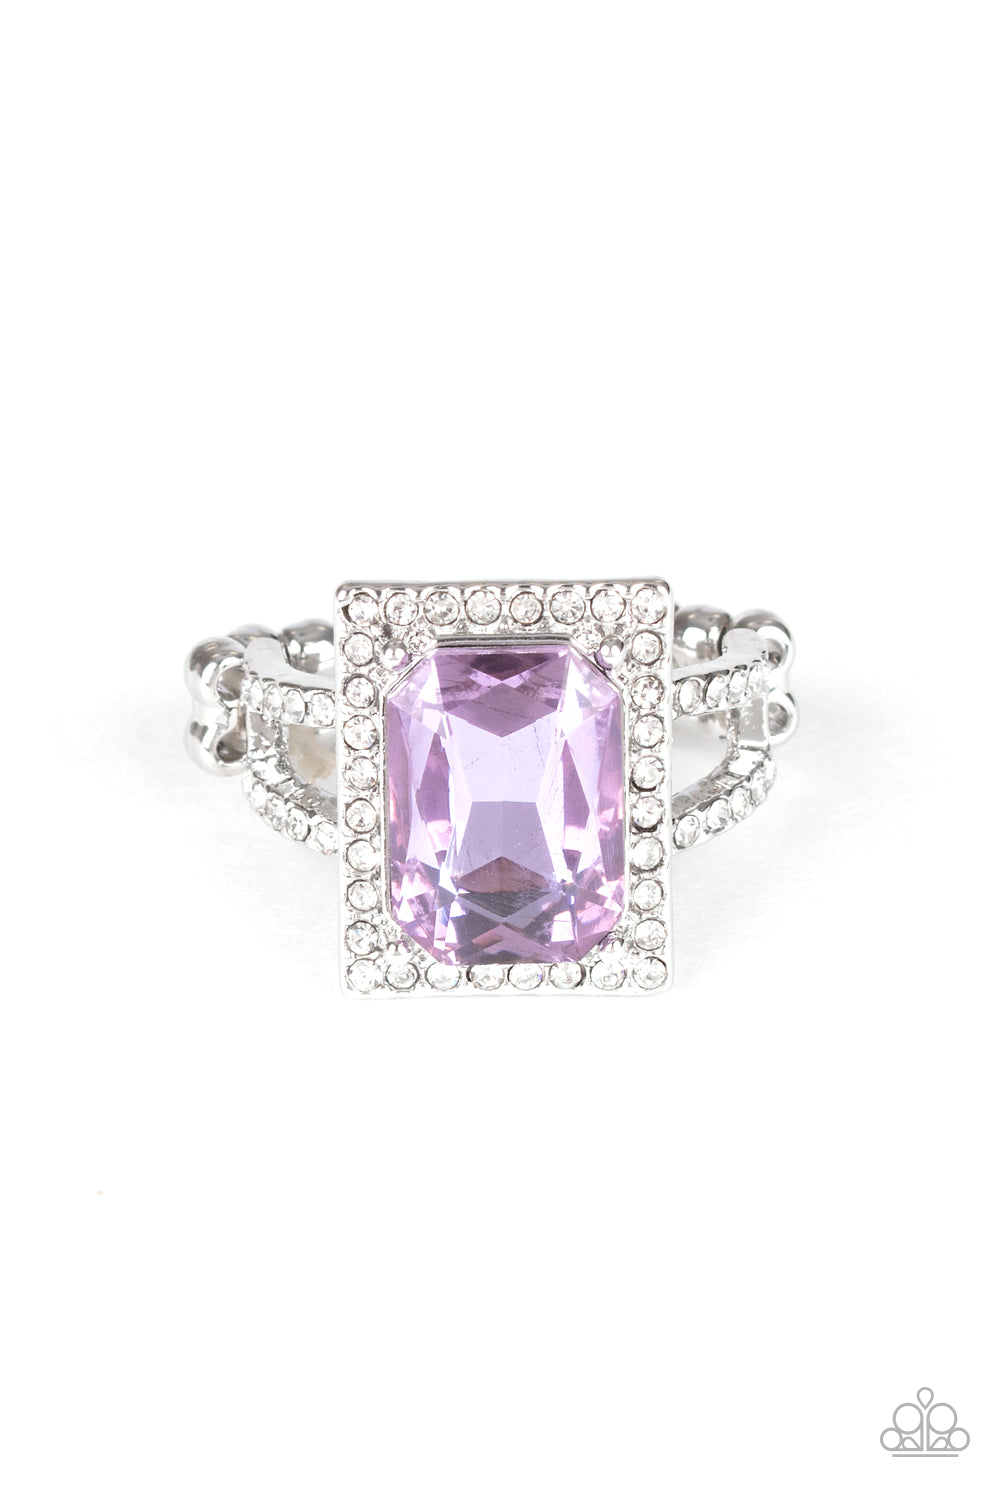 Paparazzi ♥ Utmost Prestige - Purple ♥ Ring